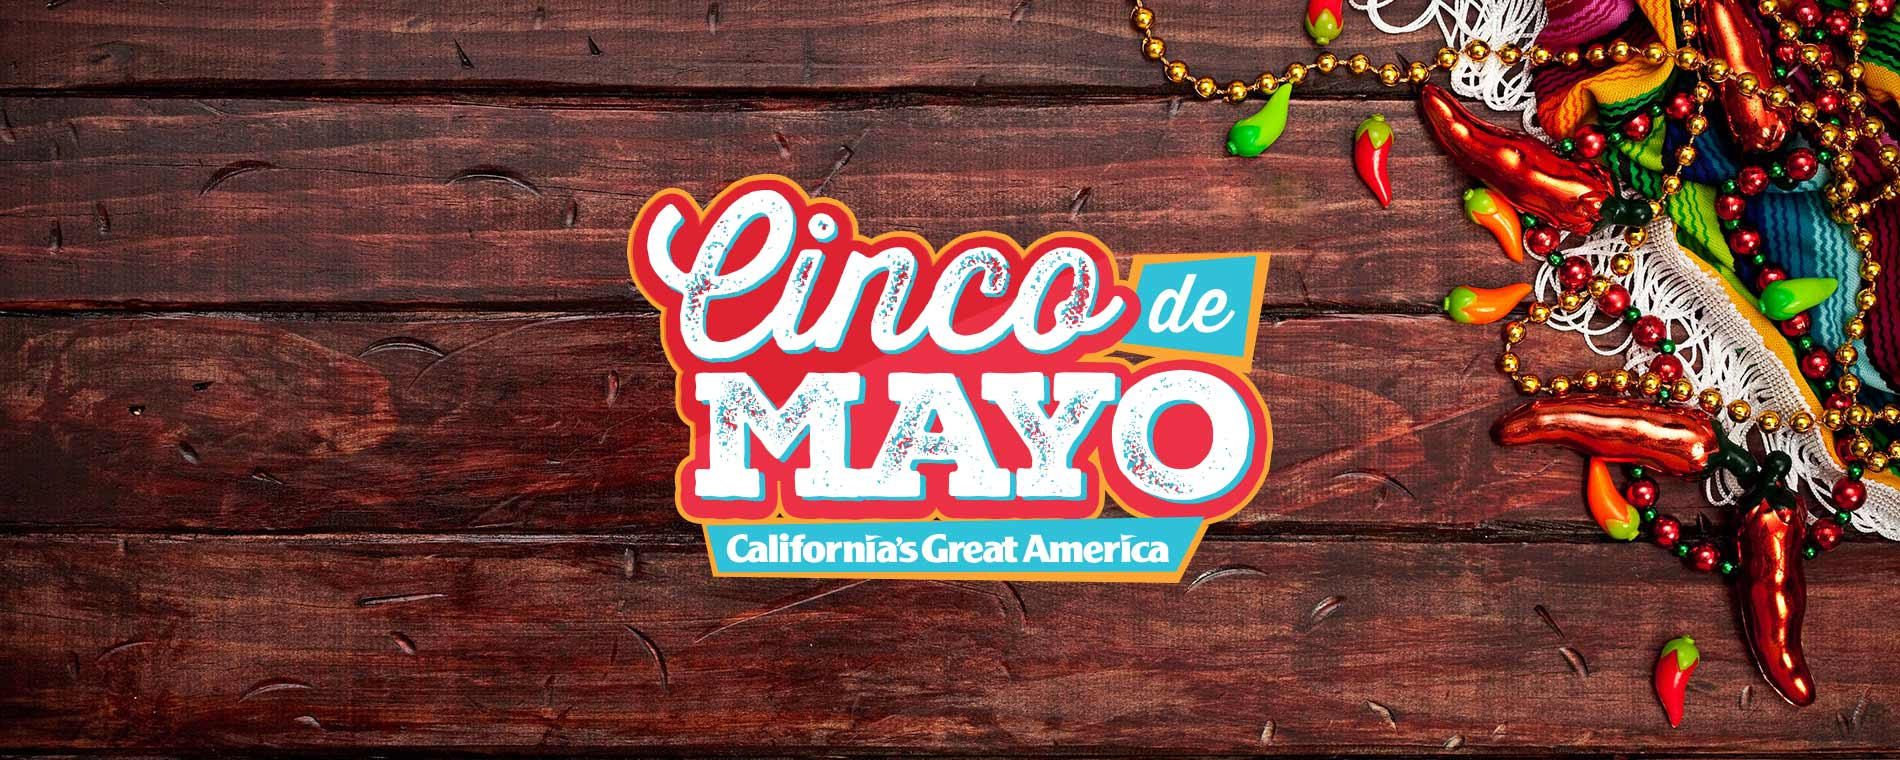 Cinco de Mayo Events and Celebration at California's Great America